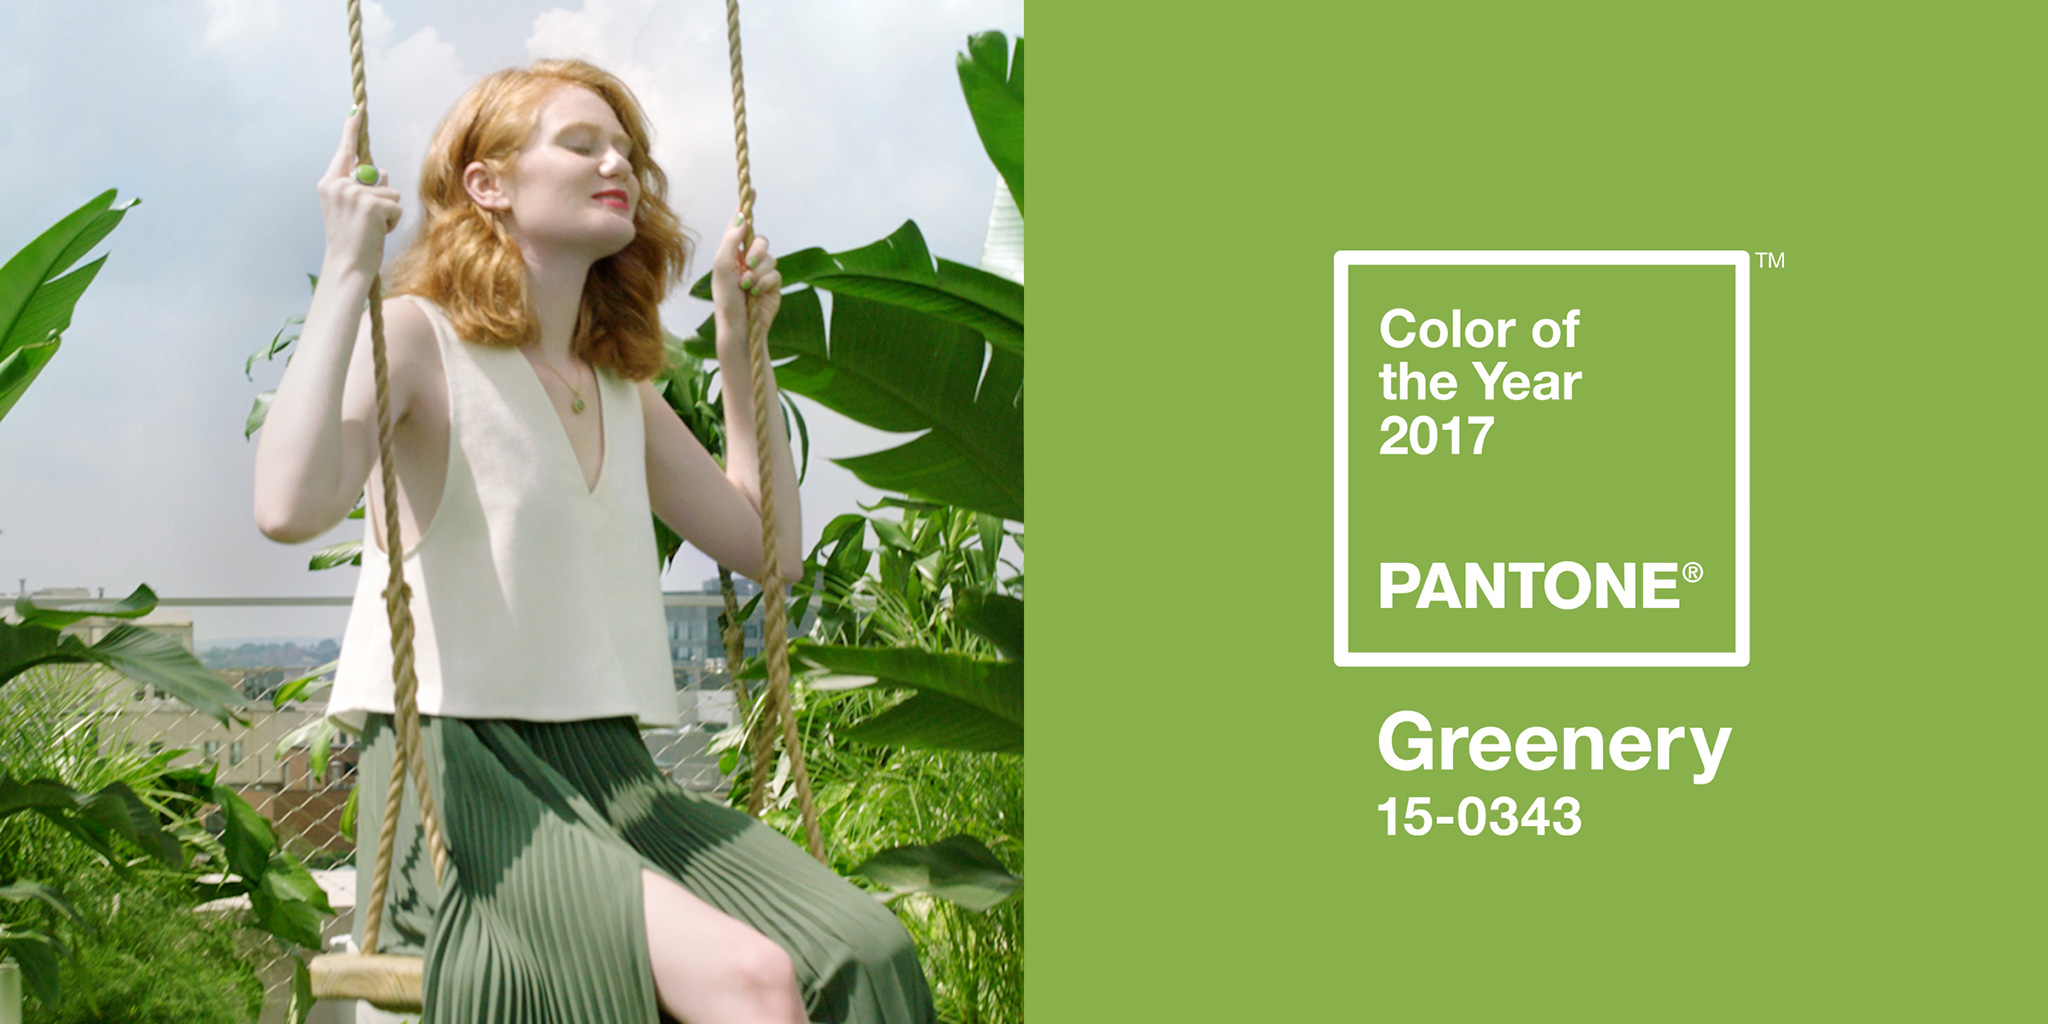 Are You Ready for Pantone Color of the Year 2018? Here's a Recap! pantone color of the year 2018 Are You Ready for Pantone Color of the Year 2018? Here's a Recap! Pantone Color of the Year a Quick Recap Before the Big Announcement 6